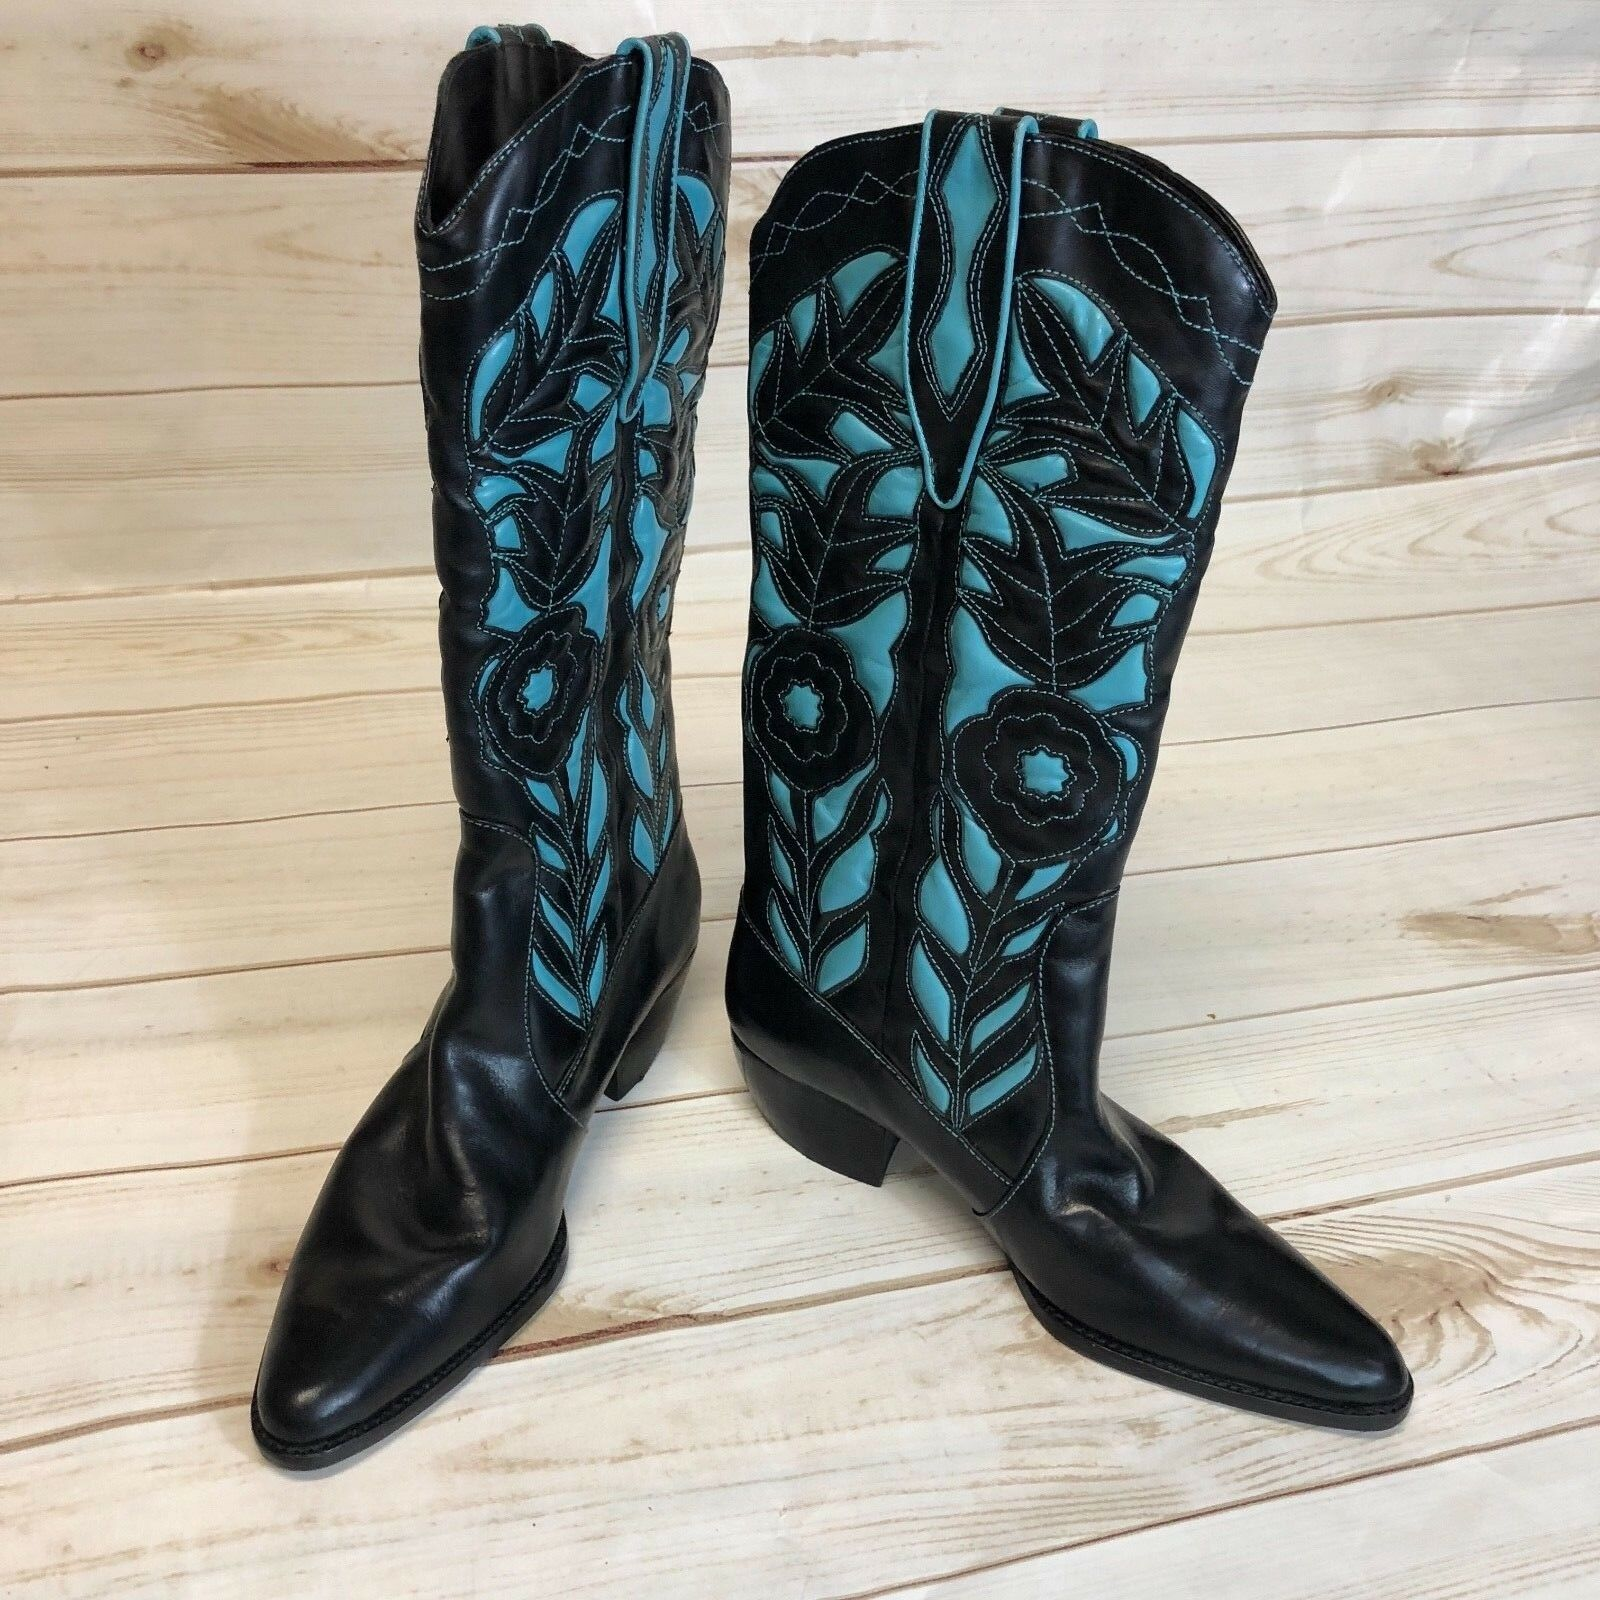 Vaneli Woman's Size 5 Black/turquoise Leather Cowboy Boots EUC **Free Shipping**